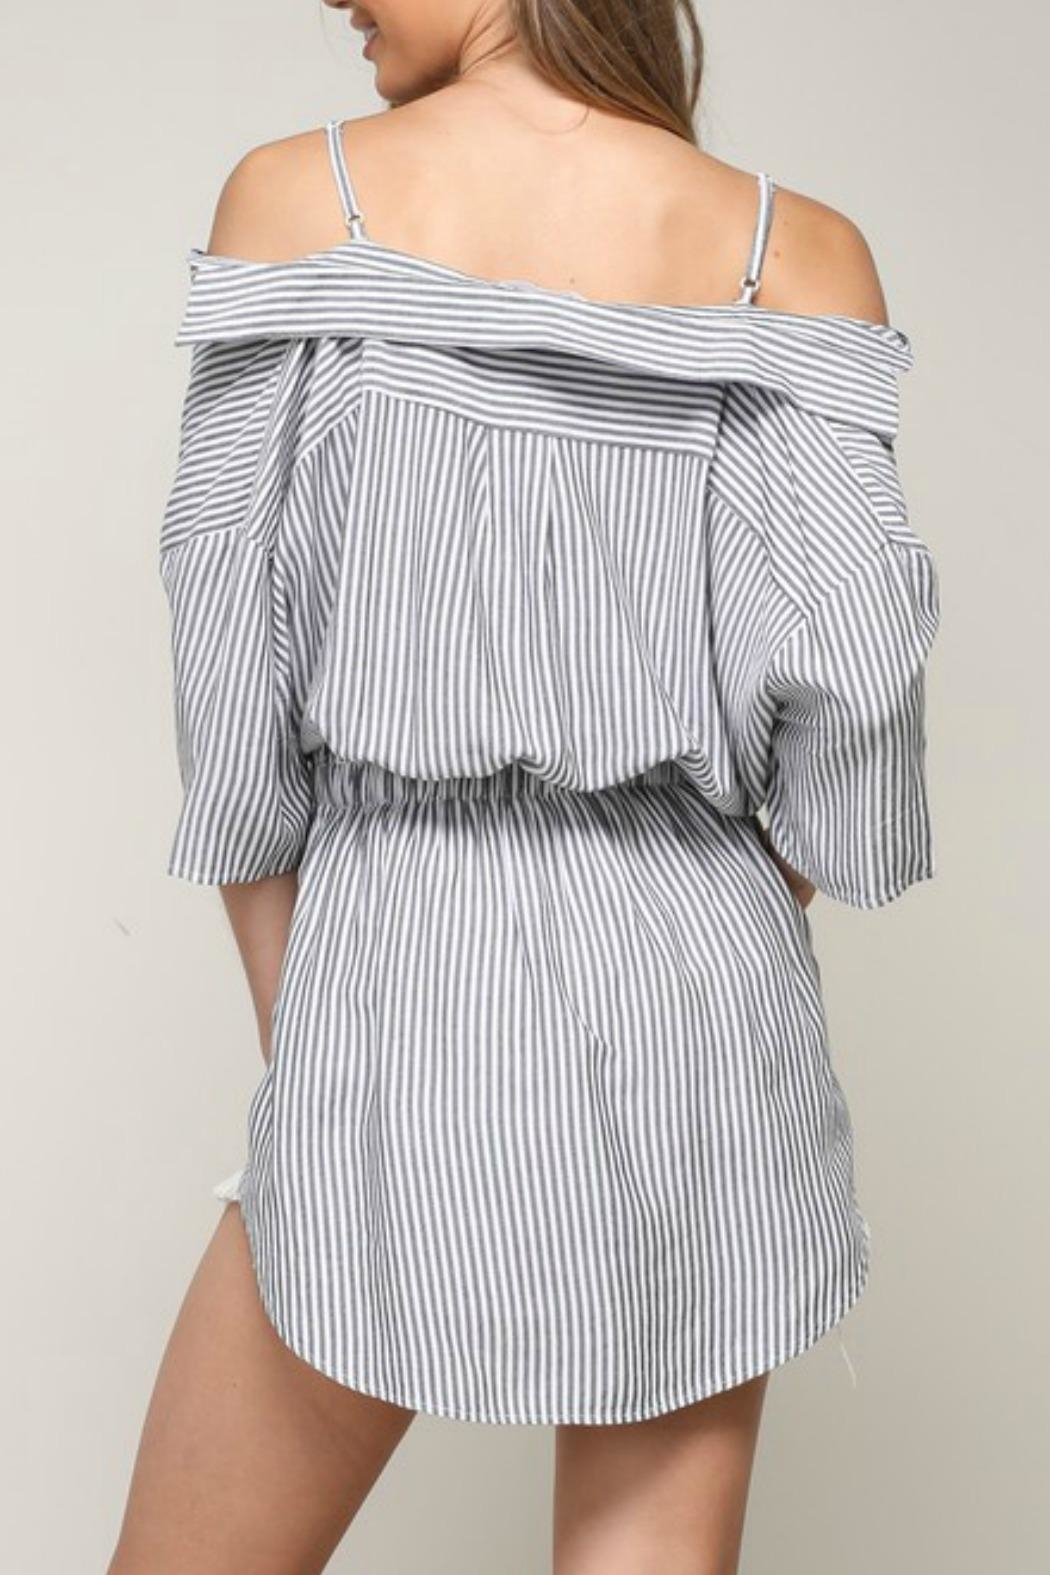 Mustard Seed Twisted Ots Shirt - Side Cropped Image